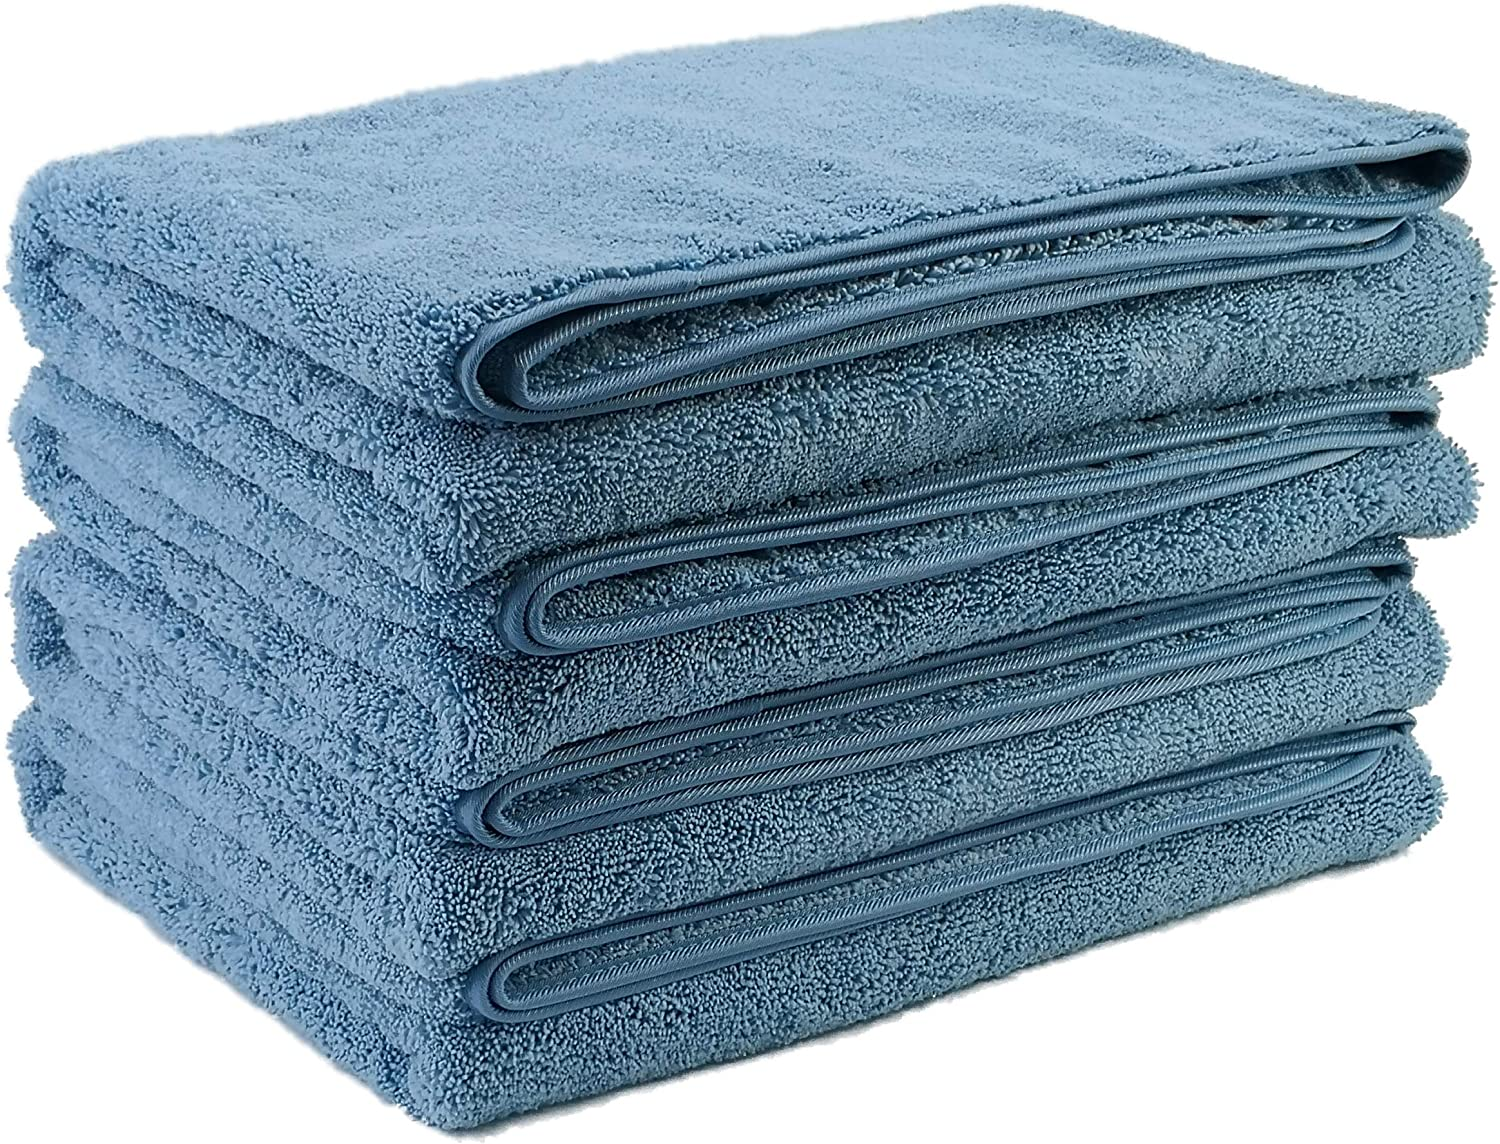 Polyte Microfiber Quick Dry Lint Free Bath Towel, 57 x 30 in, Set of 4 (Blue)